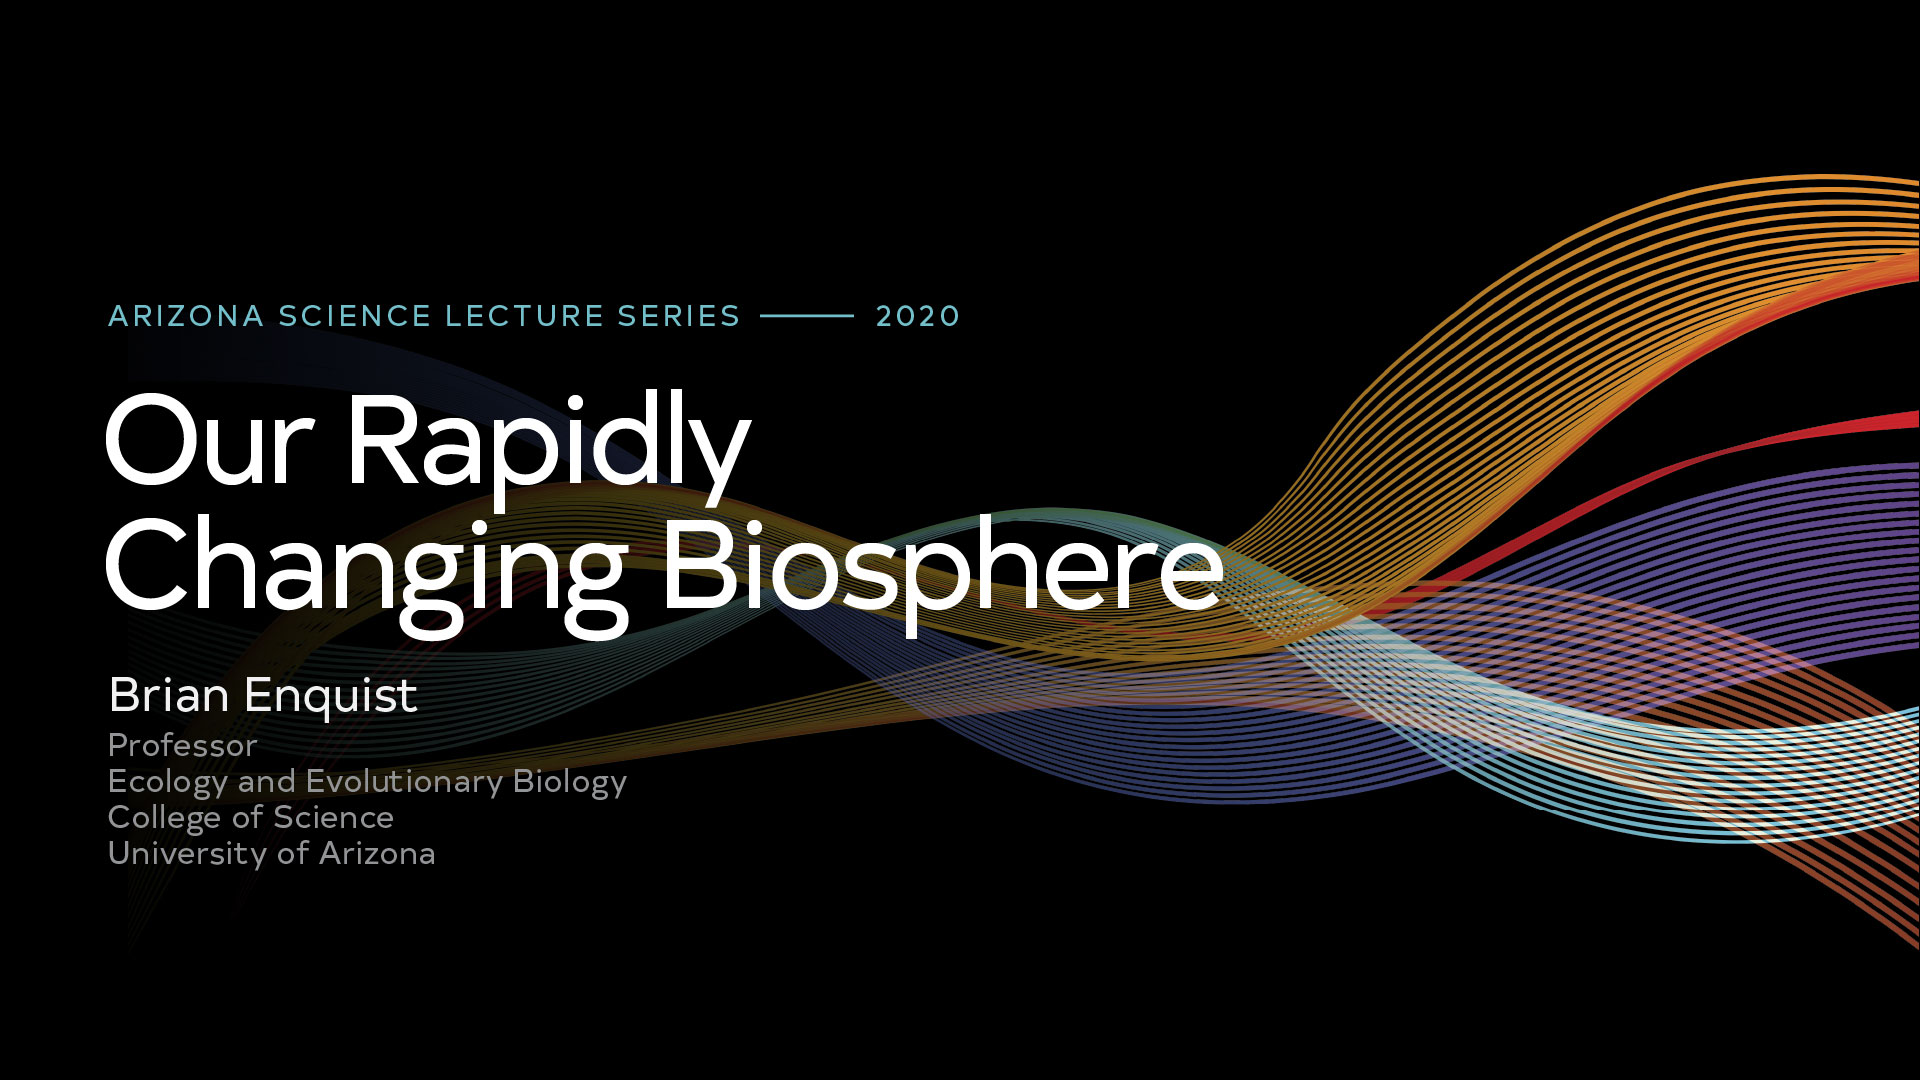 Our Rapidly Changing Biosphere